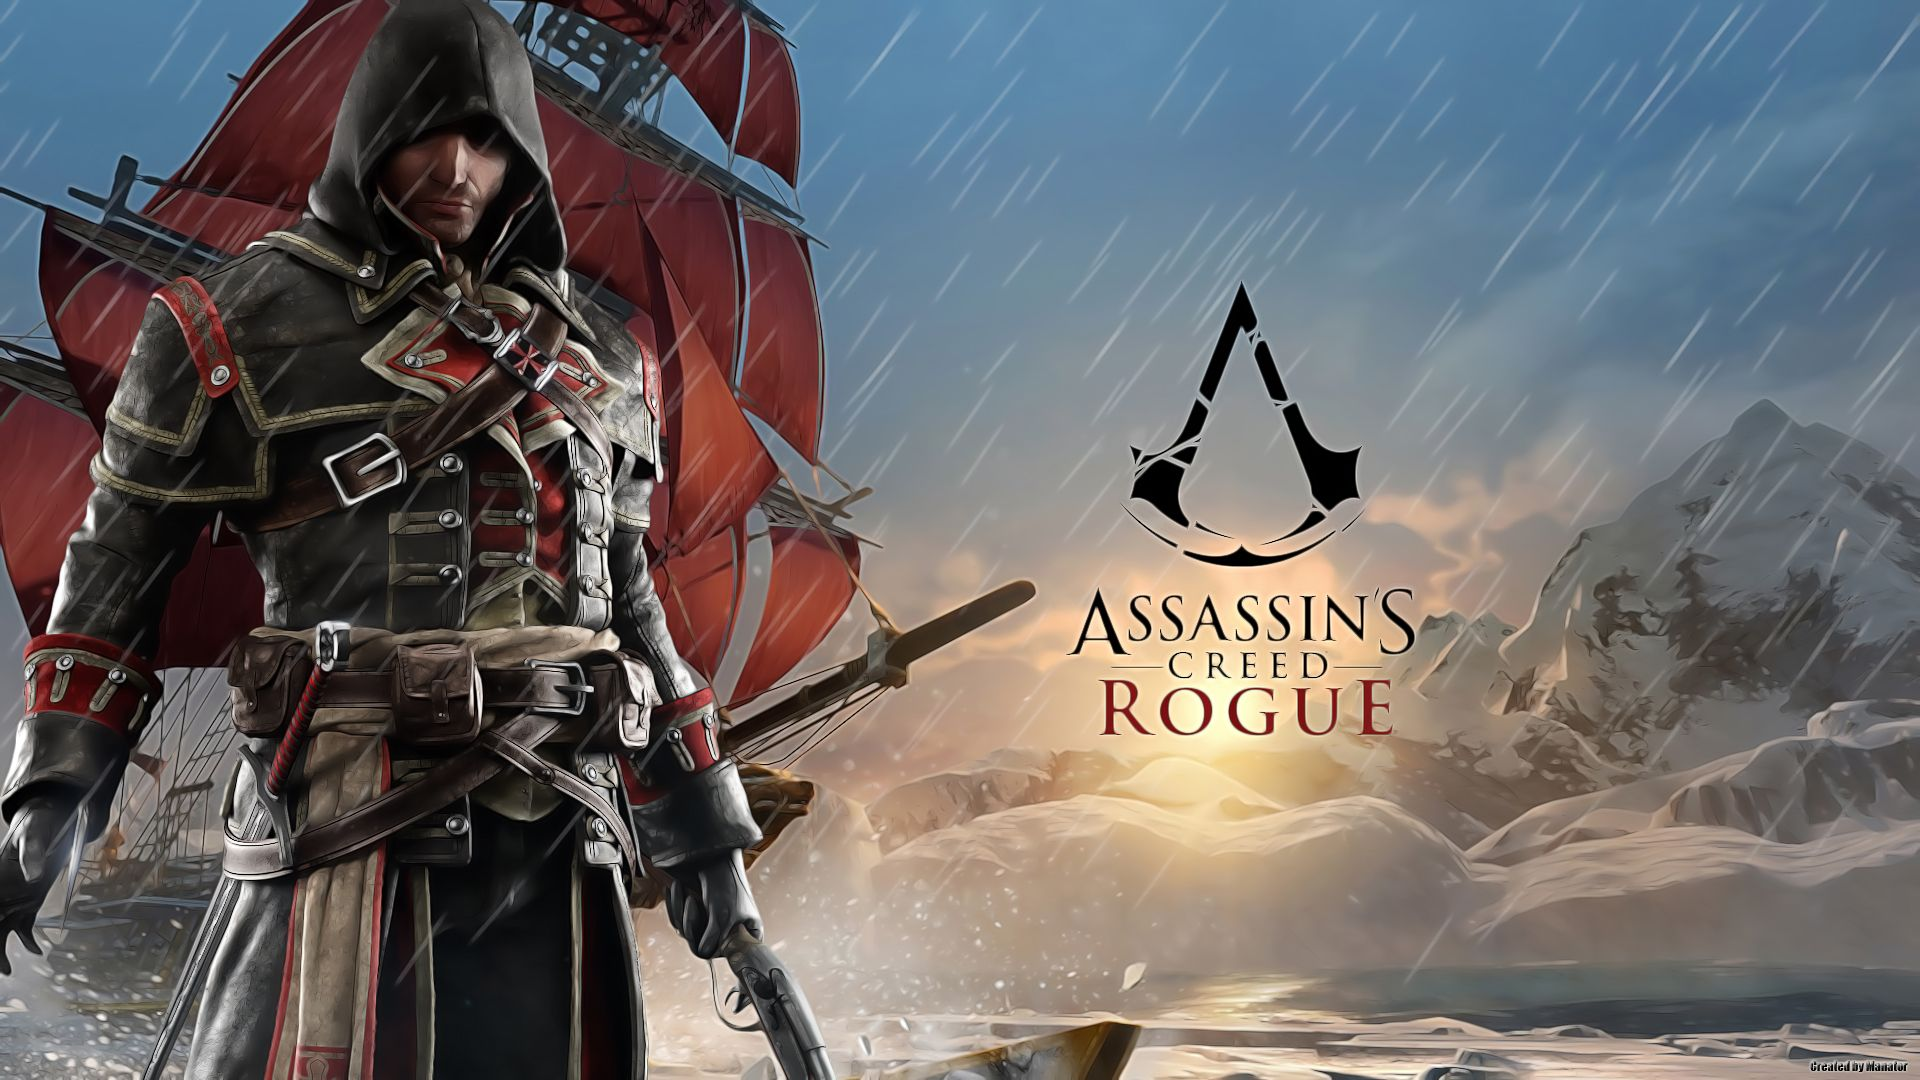 The Best Assassin S Creed Game A Countdown Assassins Creed